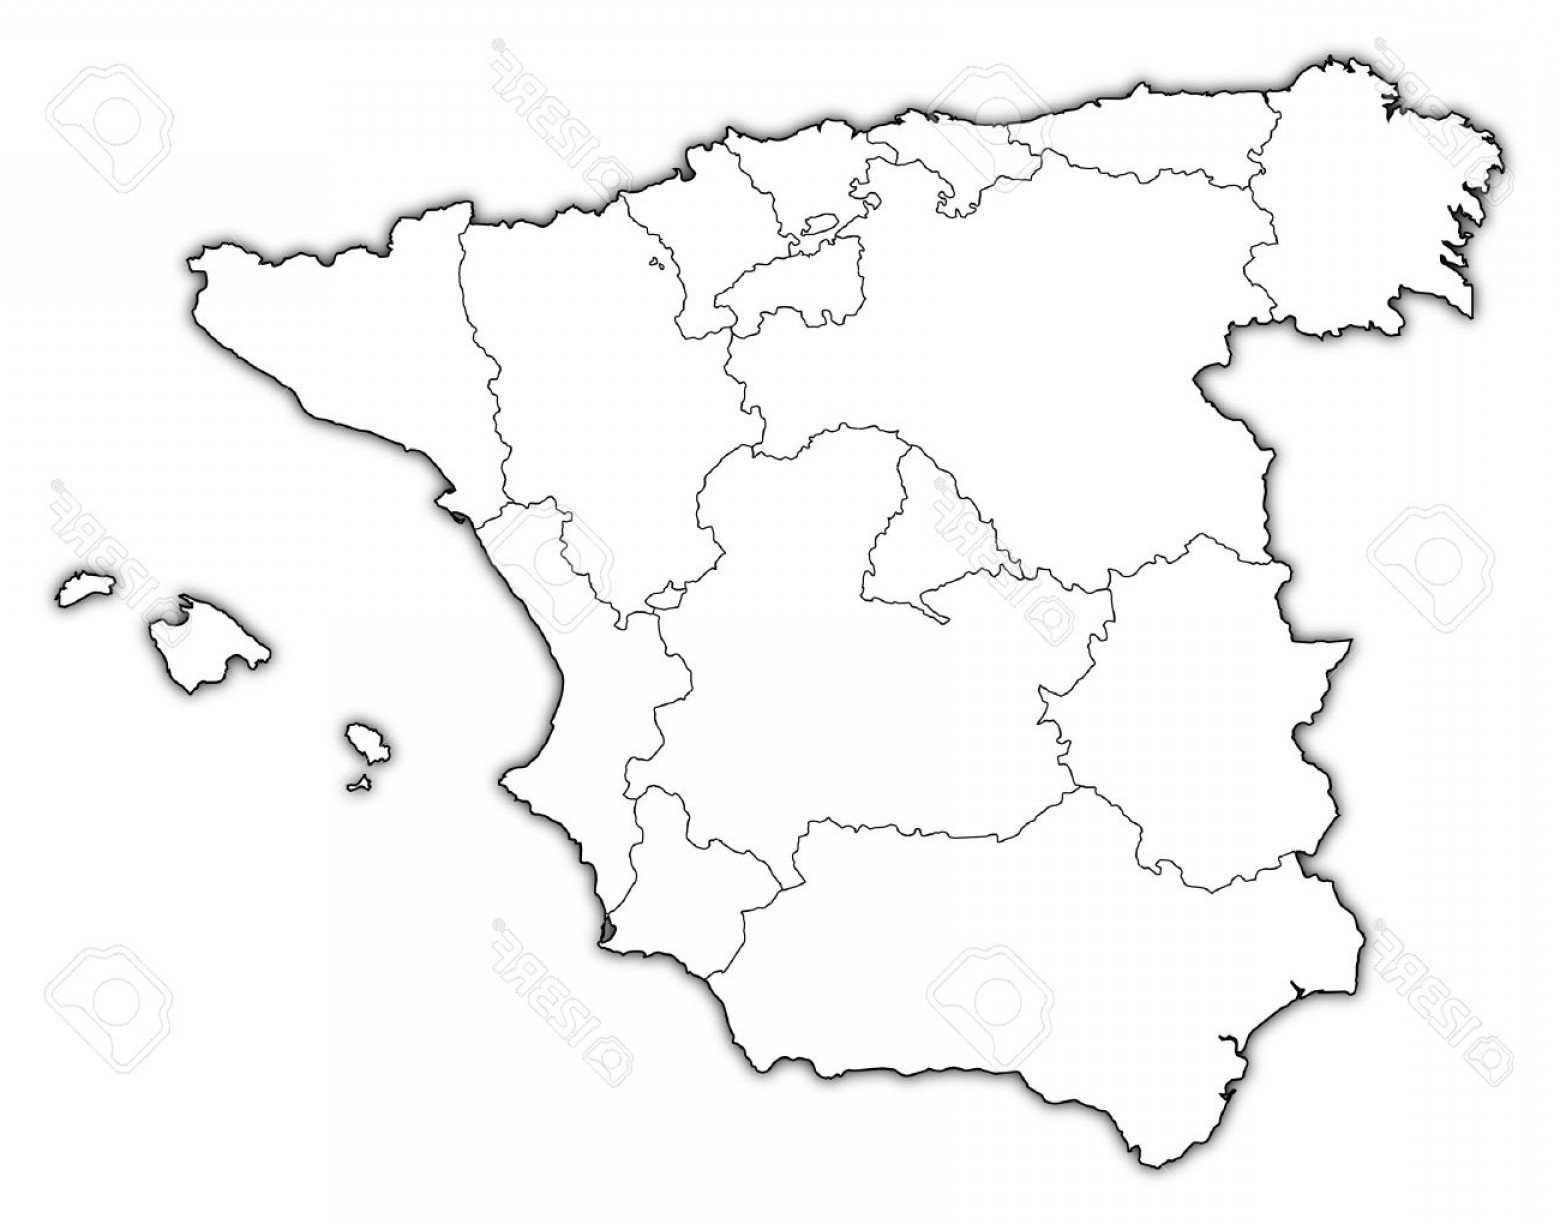 Spain Outline Vector: Photopolitical Map Of Spain With The Several Regions